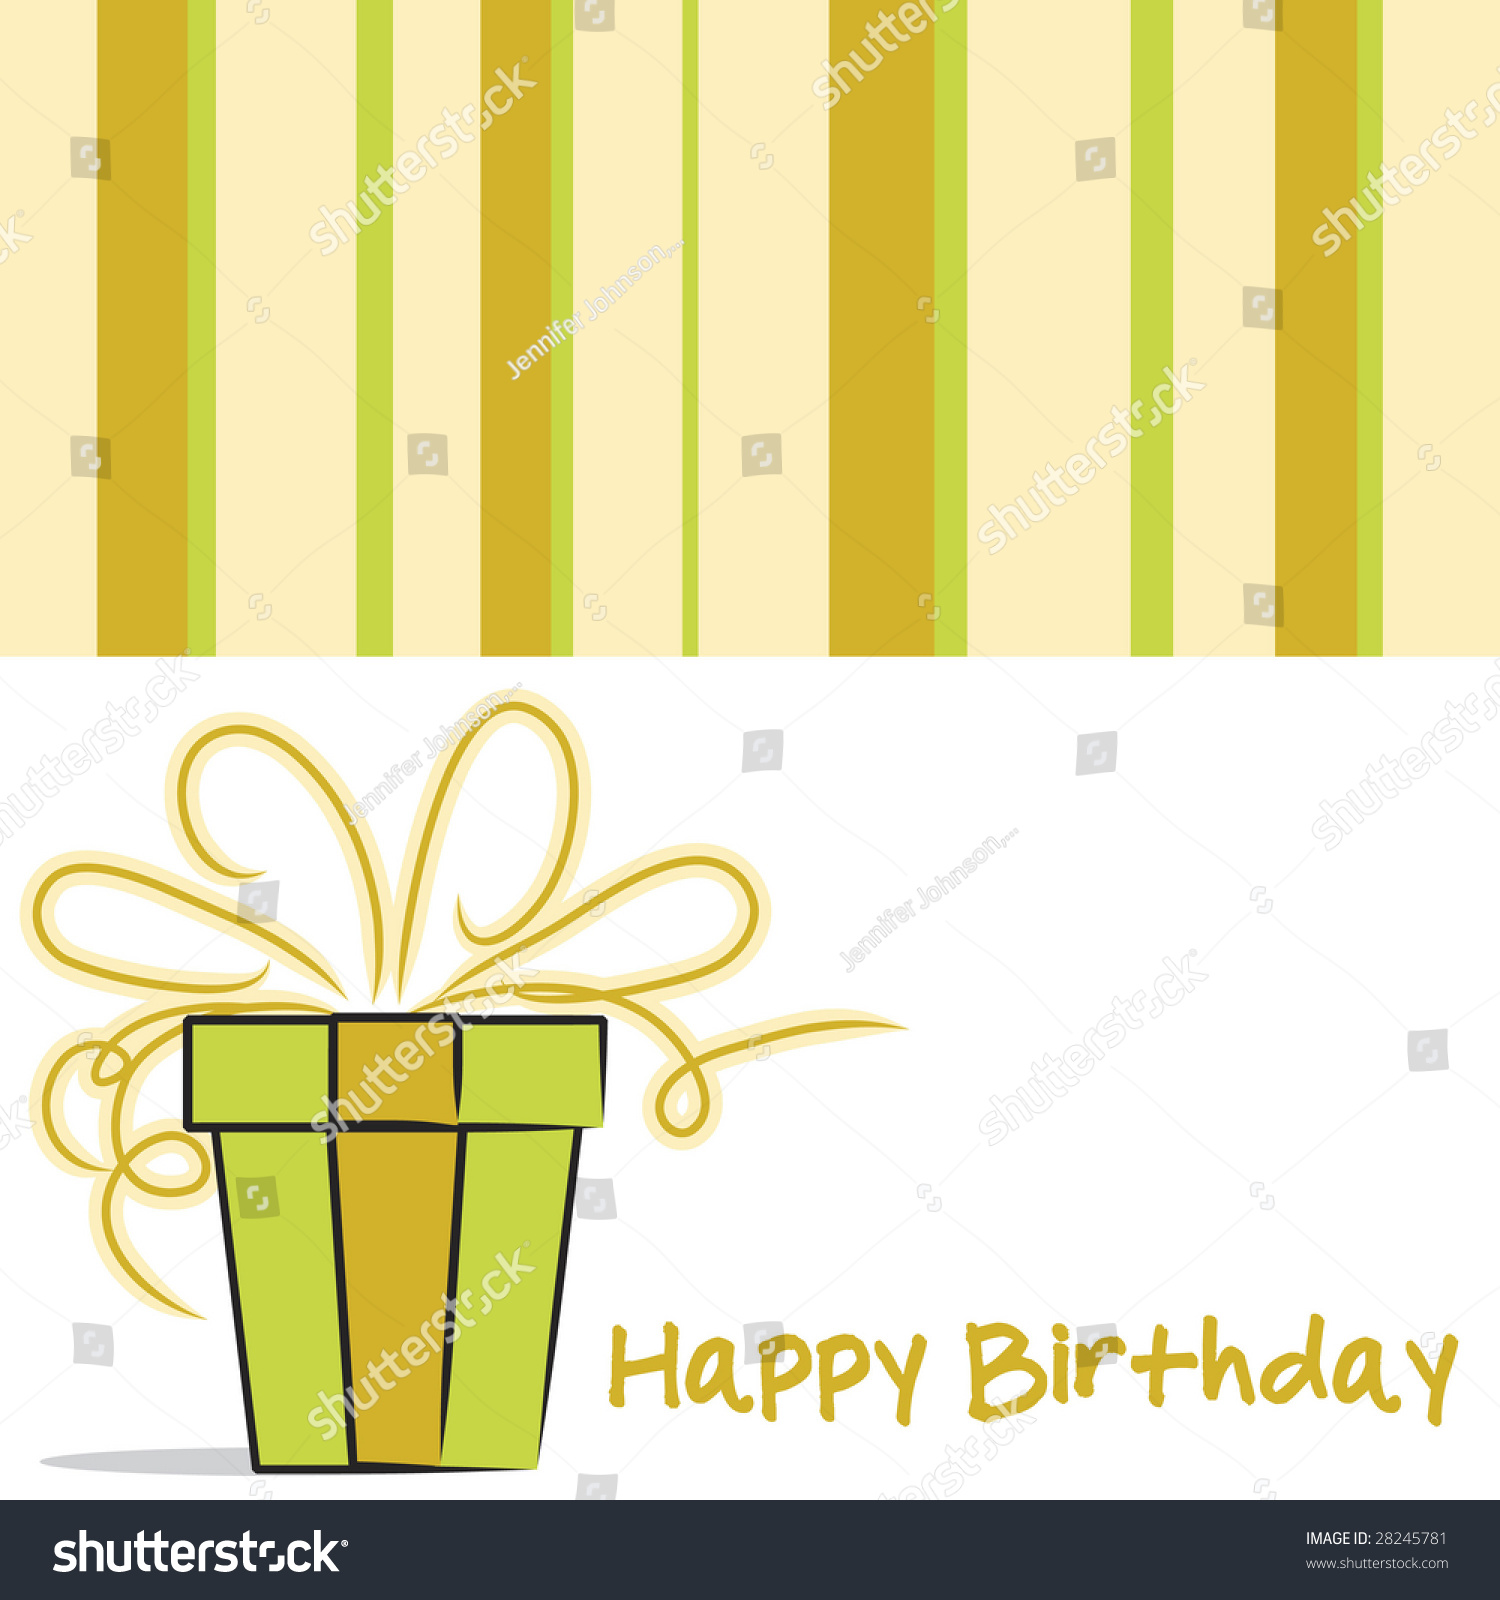 birthday card layout Template – Birthday Card Layout